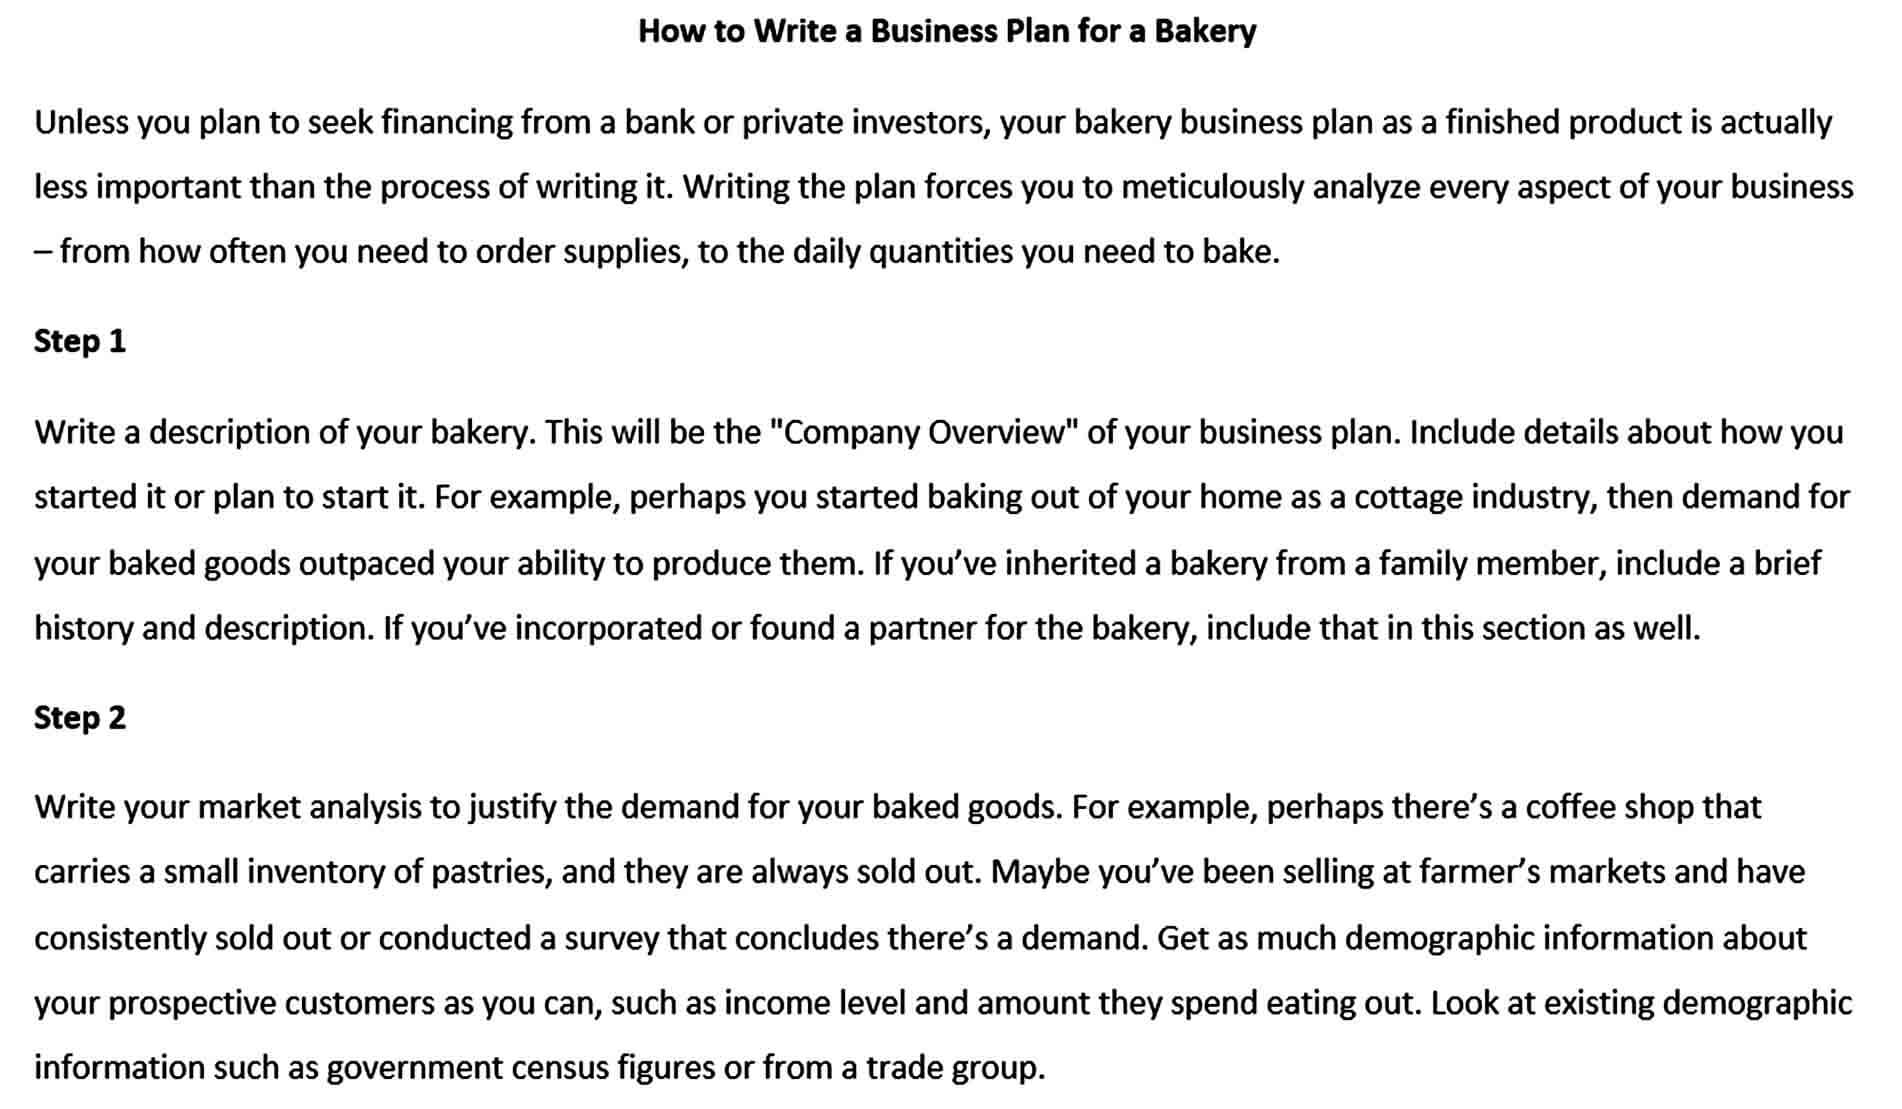 Templates how to write a bakery busines